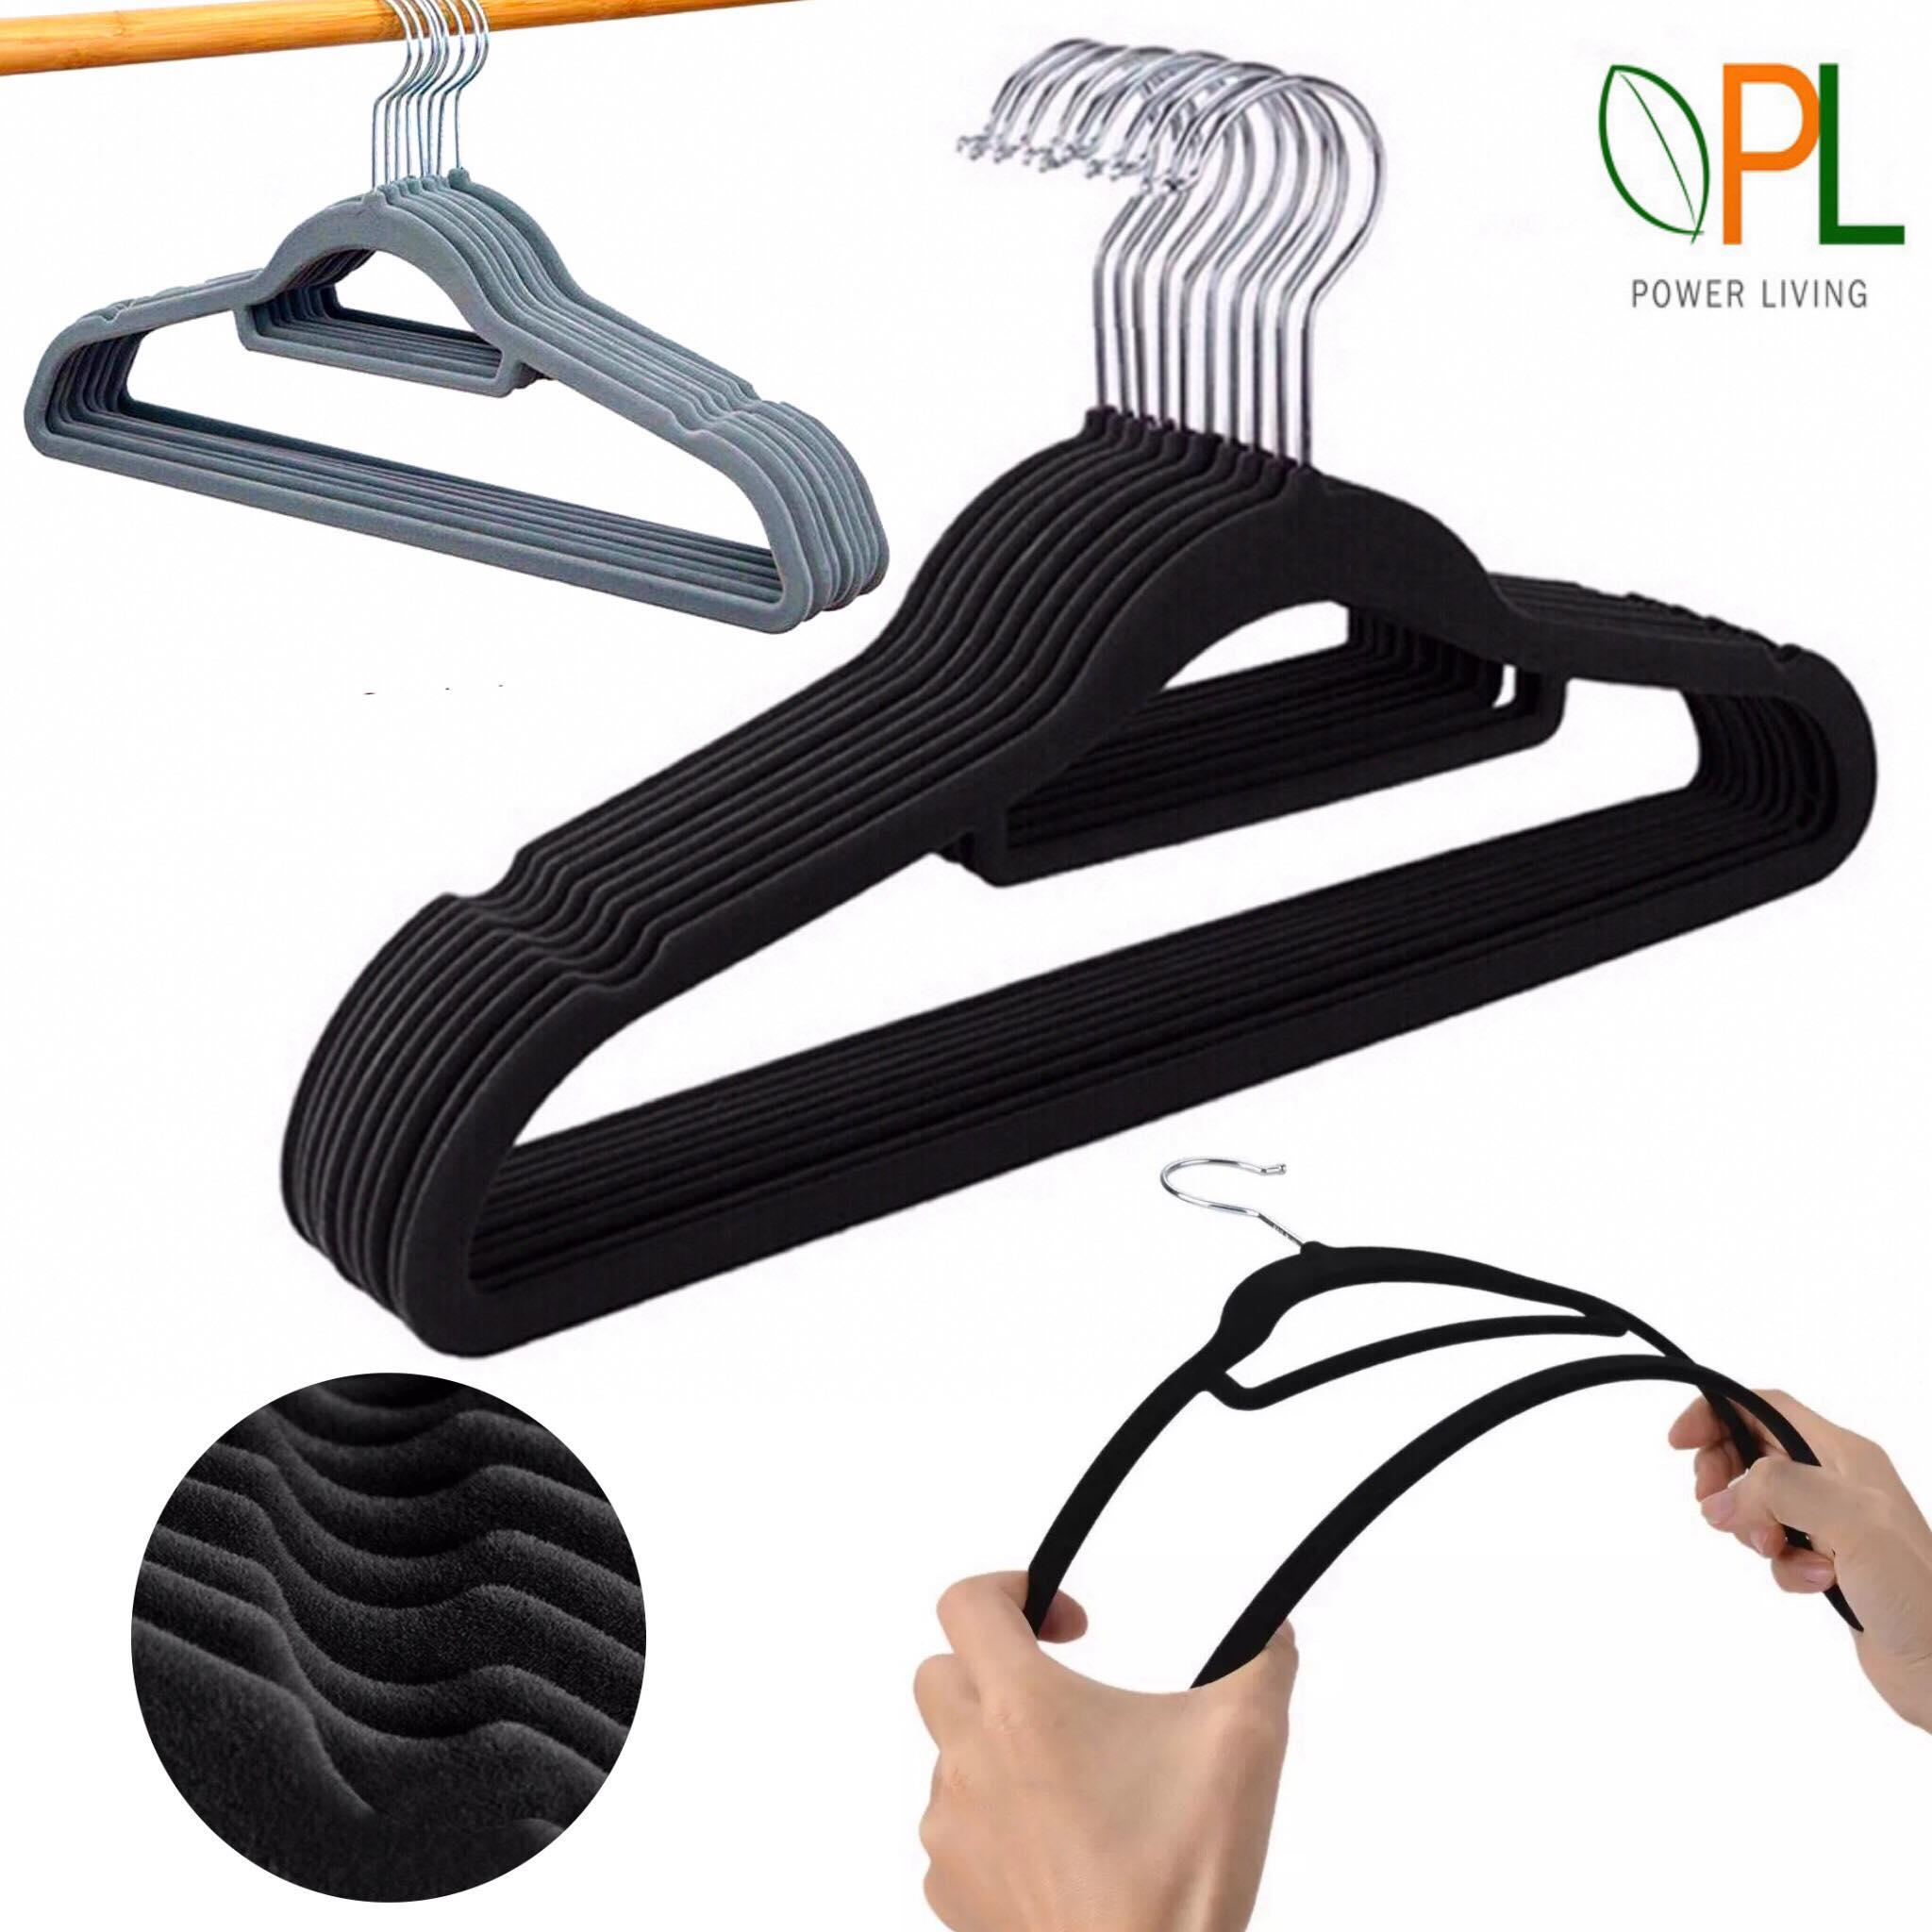 Velvet Clothes Hanger (50pcs Per Set) By Power Living.